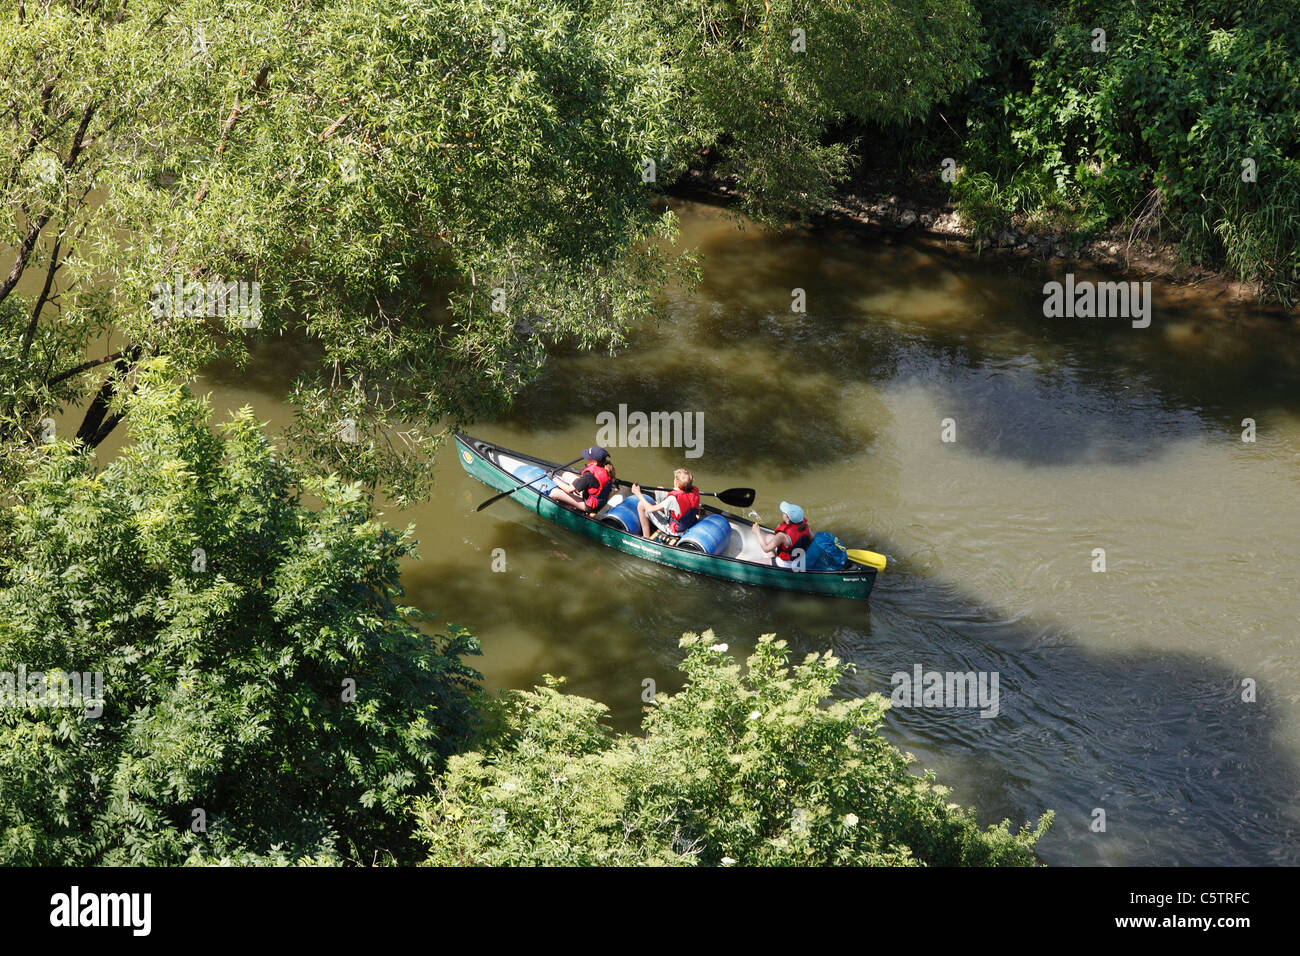 Germany, Bavaria, Franconia, Middle Franconia, View of canoe on altmuehl river, - Stock Image